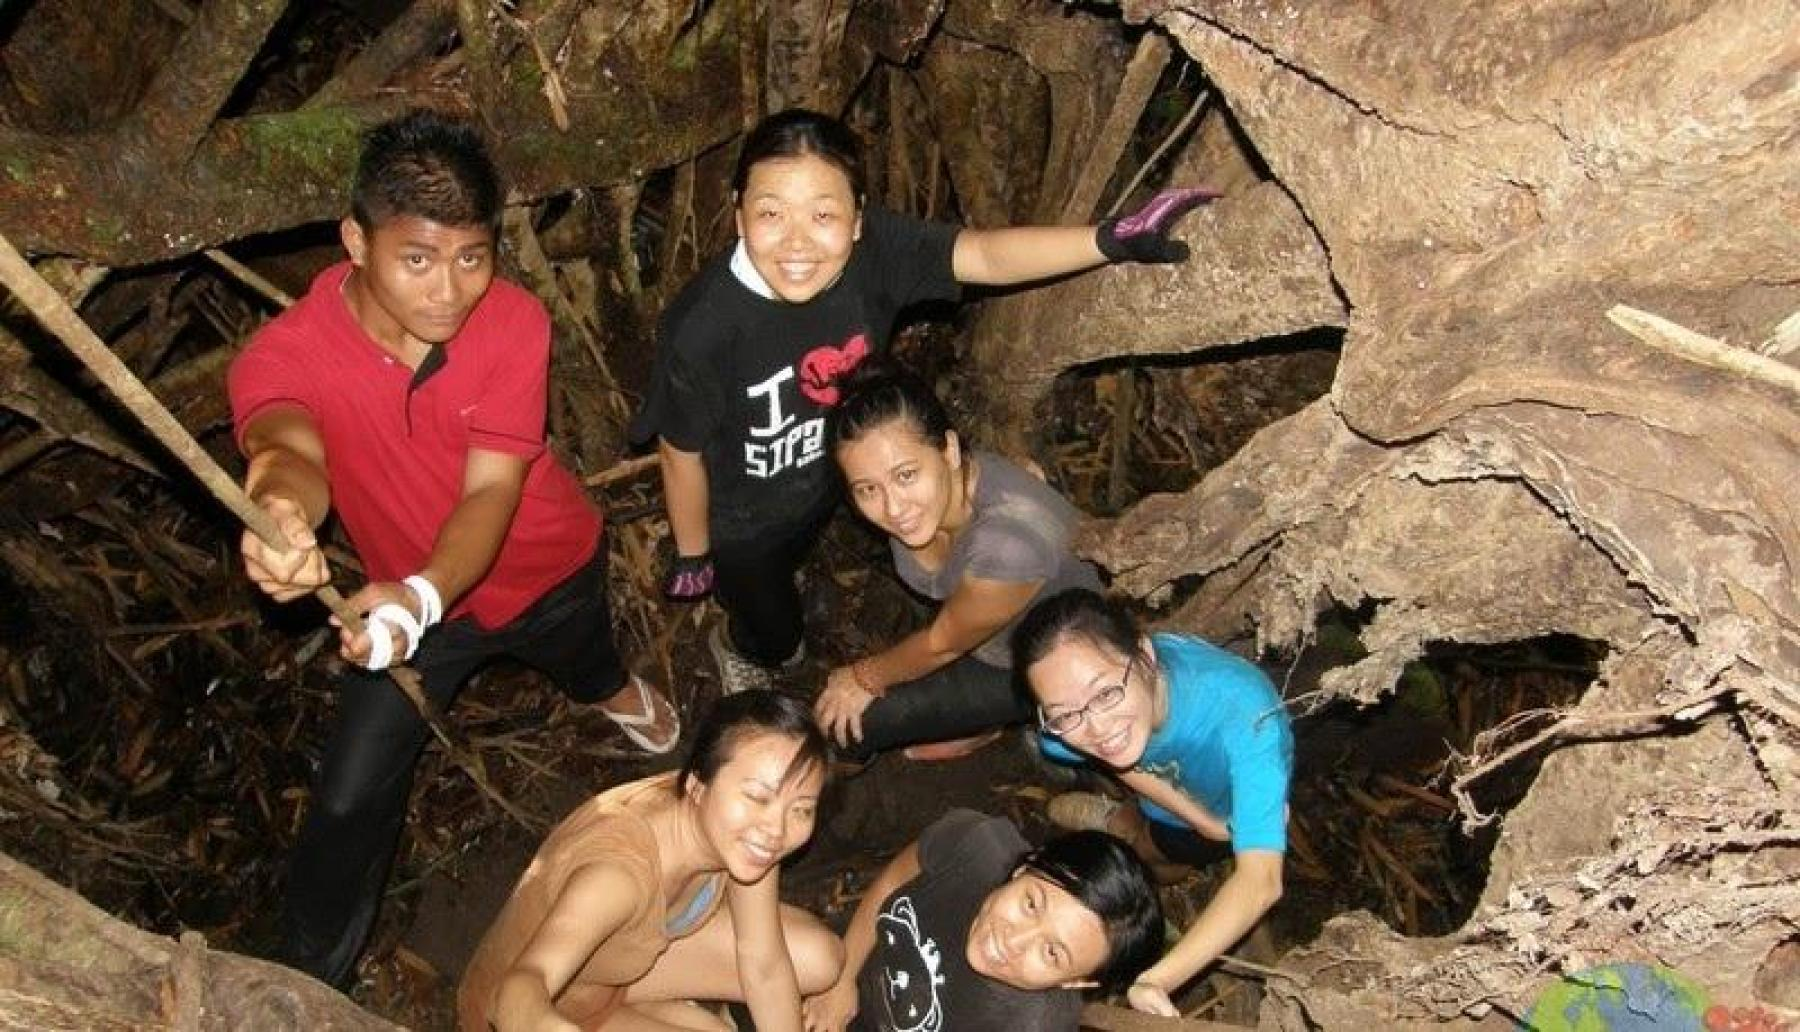 Squeeze'n'slide Pala Rock & discover hidden beaches by the oldest Malay lighthou starting at Kuala Lumpur Malaysia